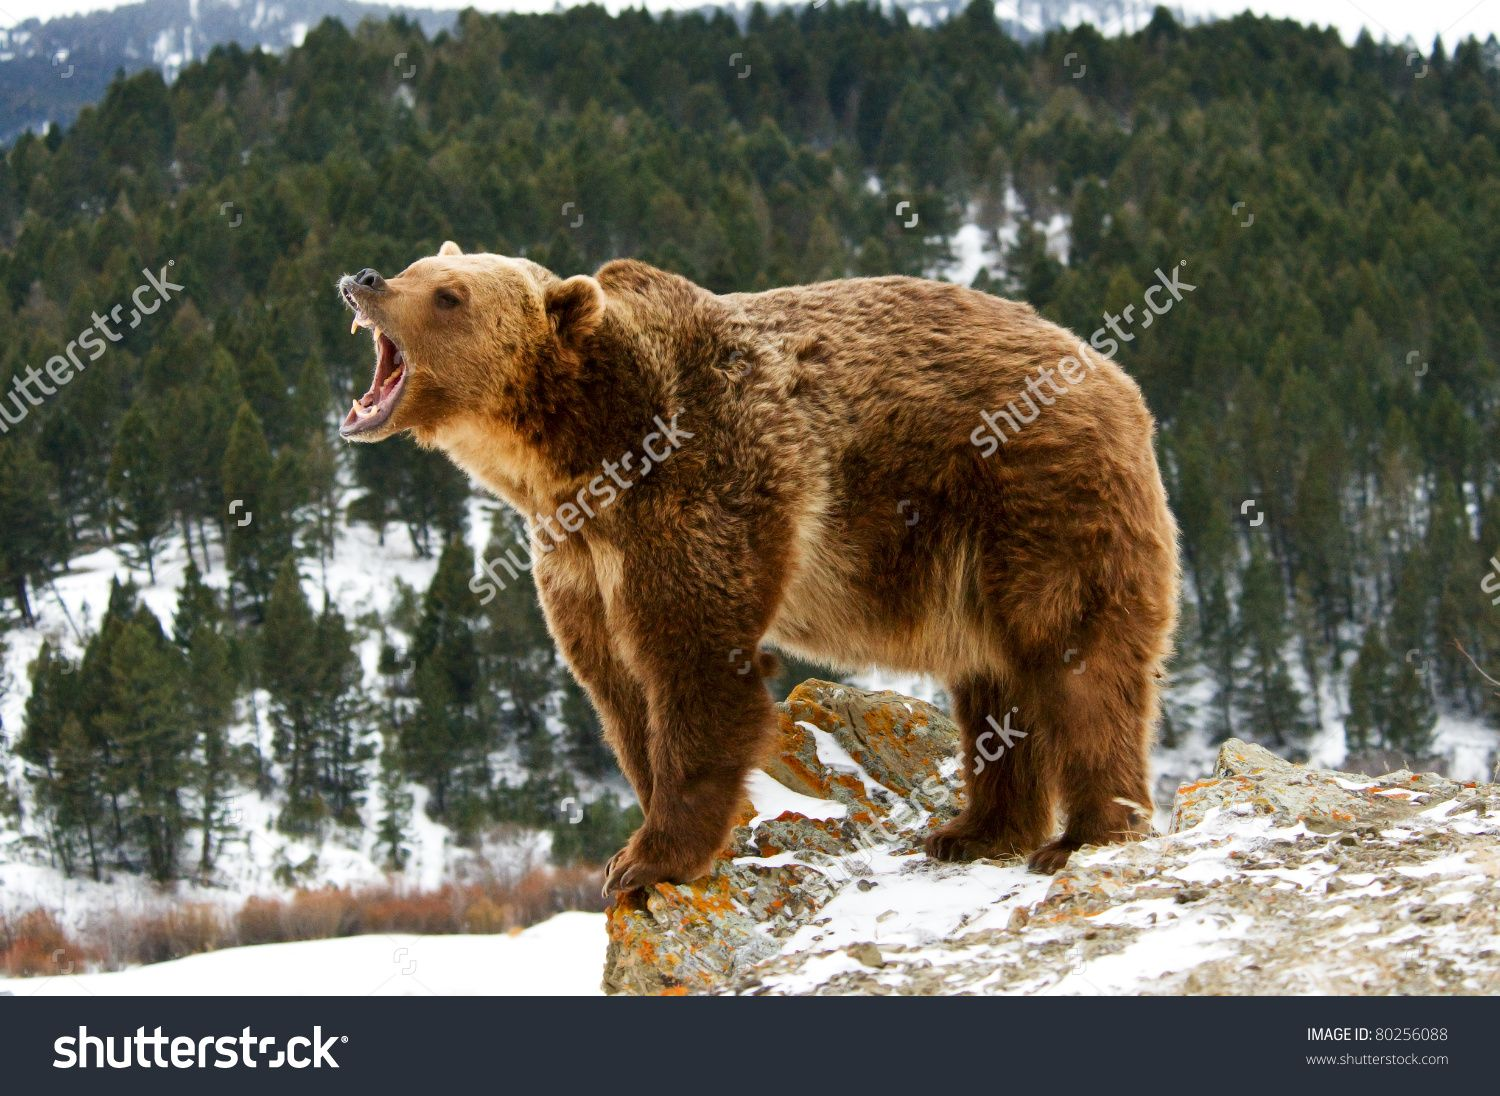 stock-photo-grizzly-bear-growling-on-snowy-cliff-80256088.jpg ...